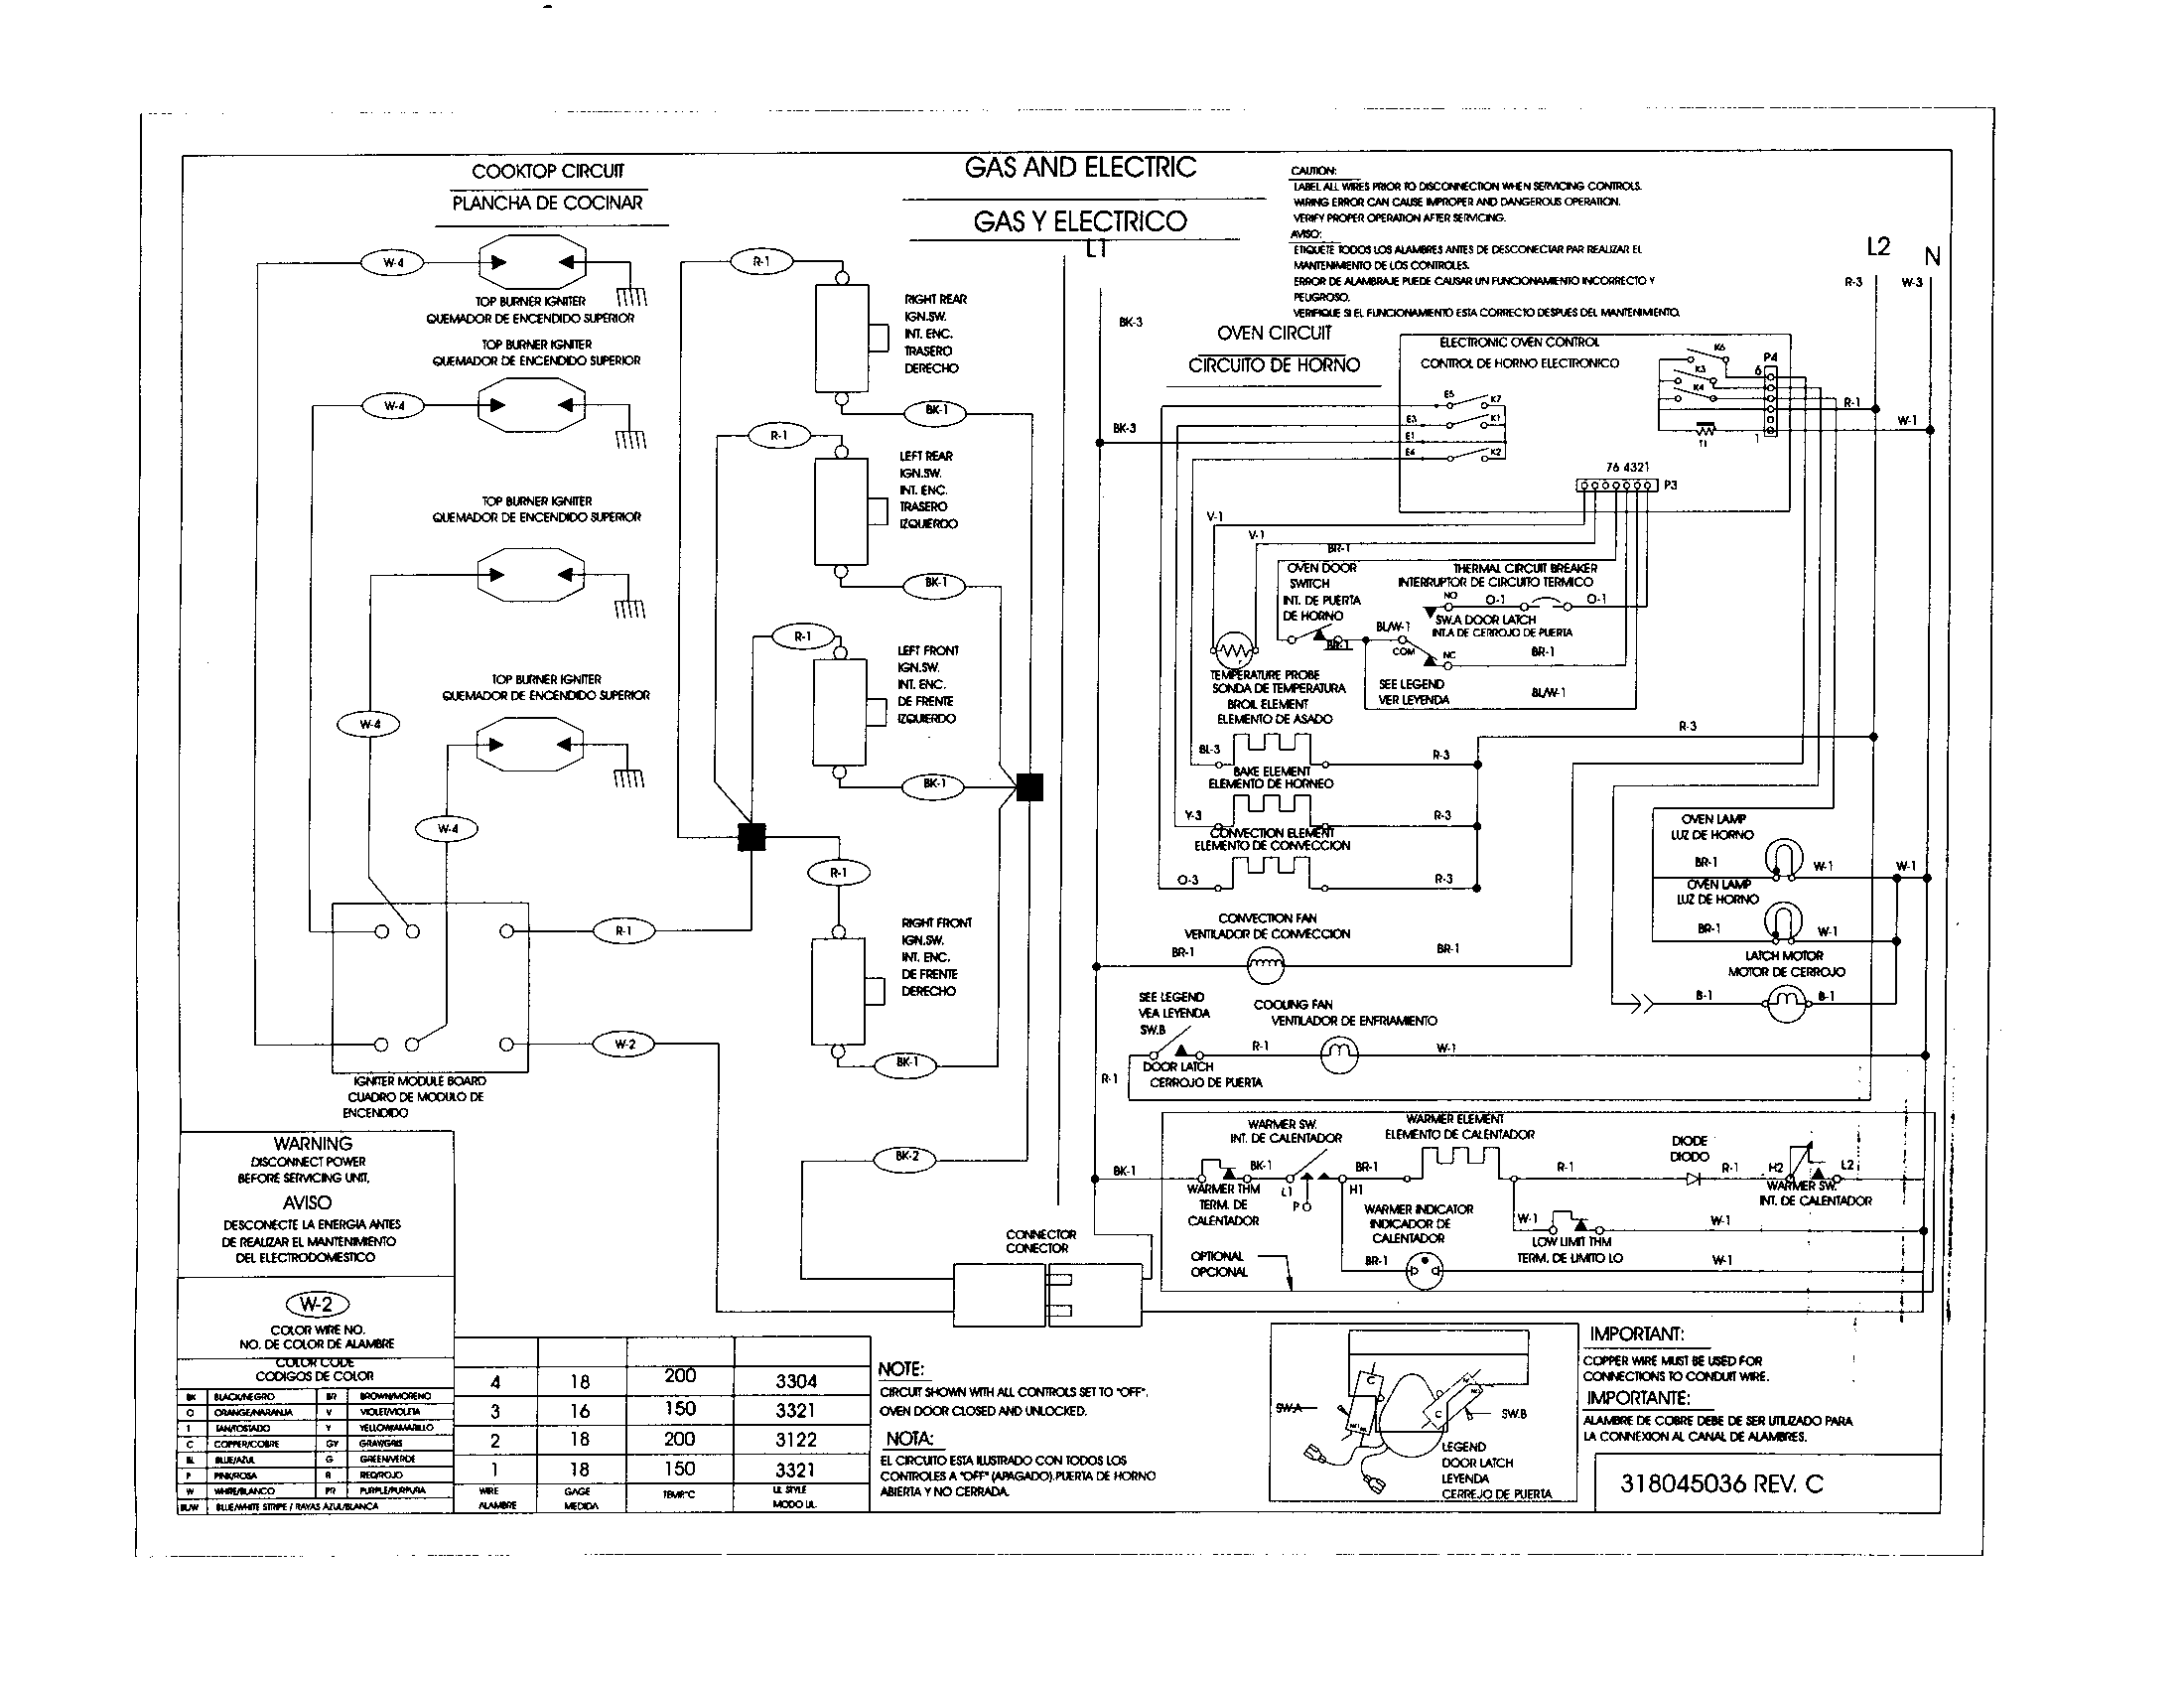 gas wall heater wiring diagram ge gas dryer wiring diagram wiring diagrams electric wall heater wiring diagram car